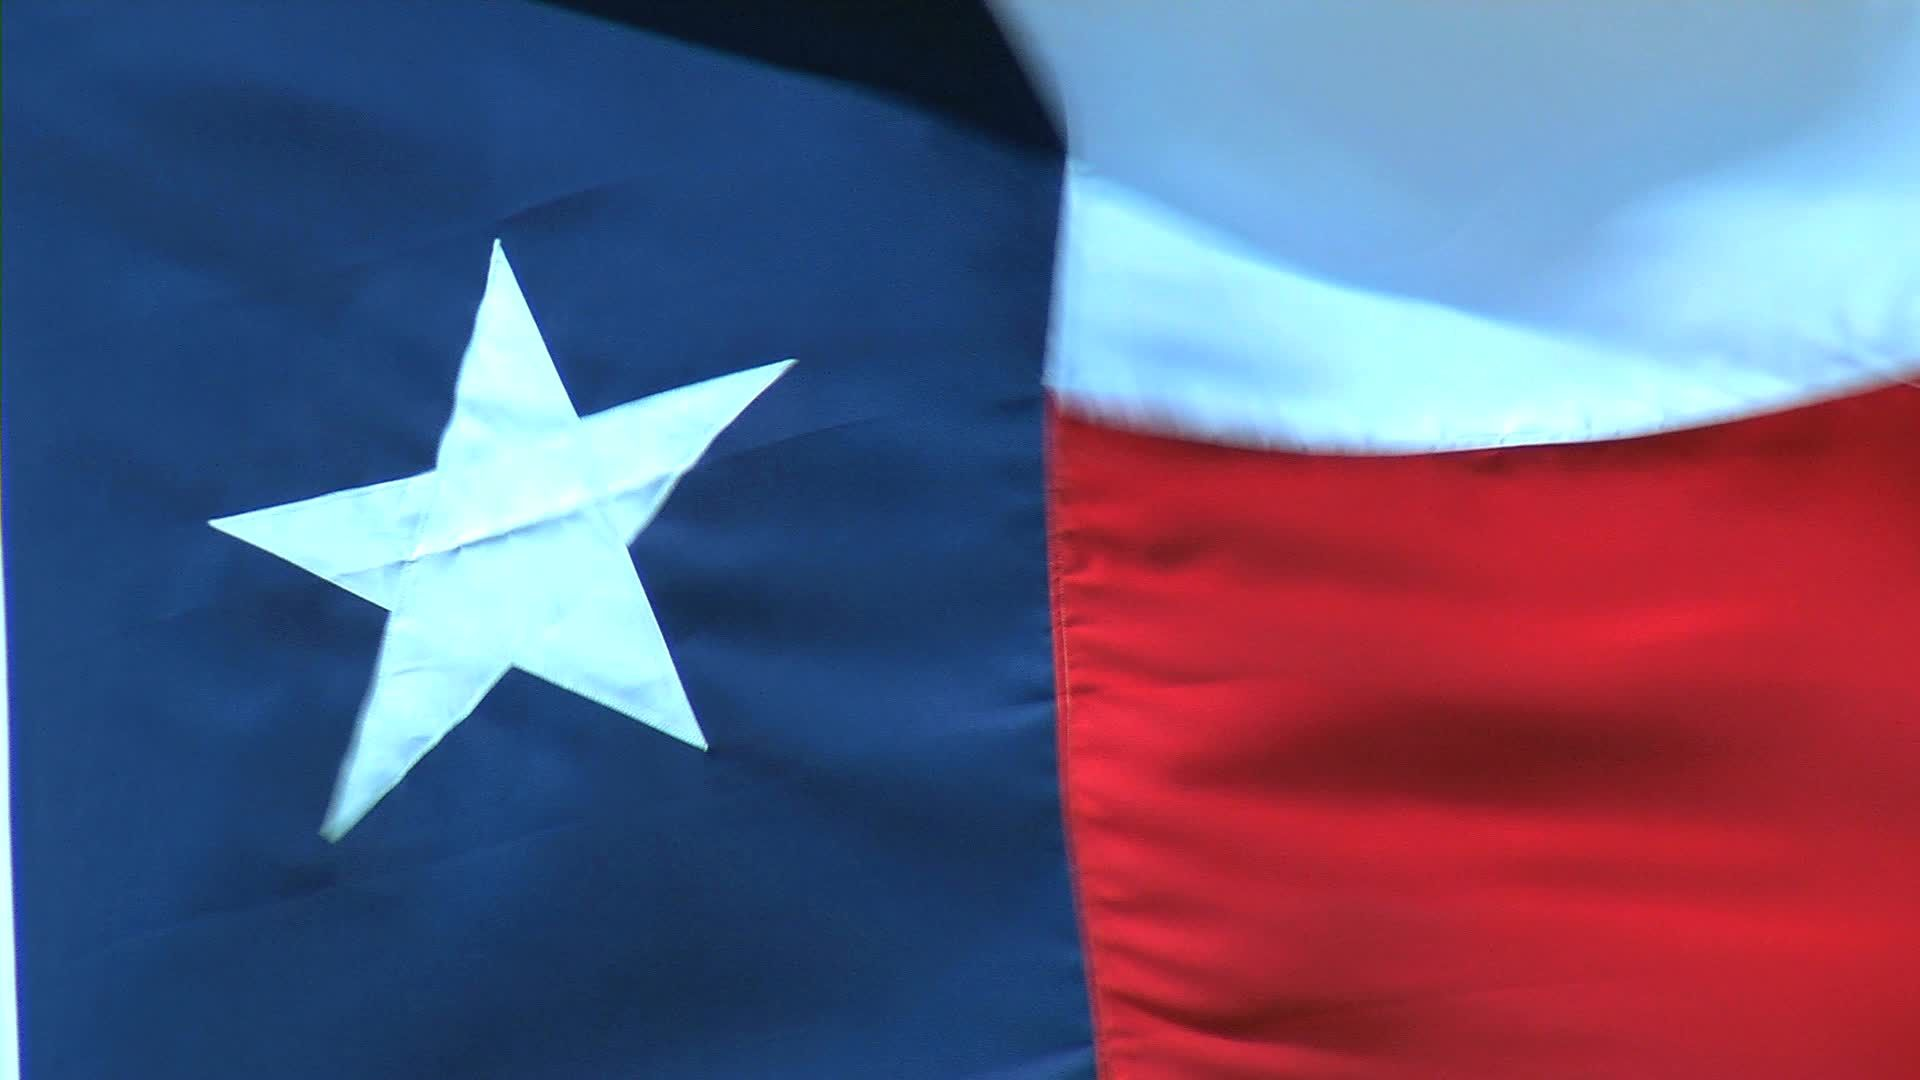 Texas Flag download free wallpaper image search